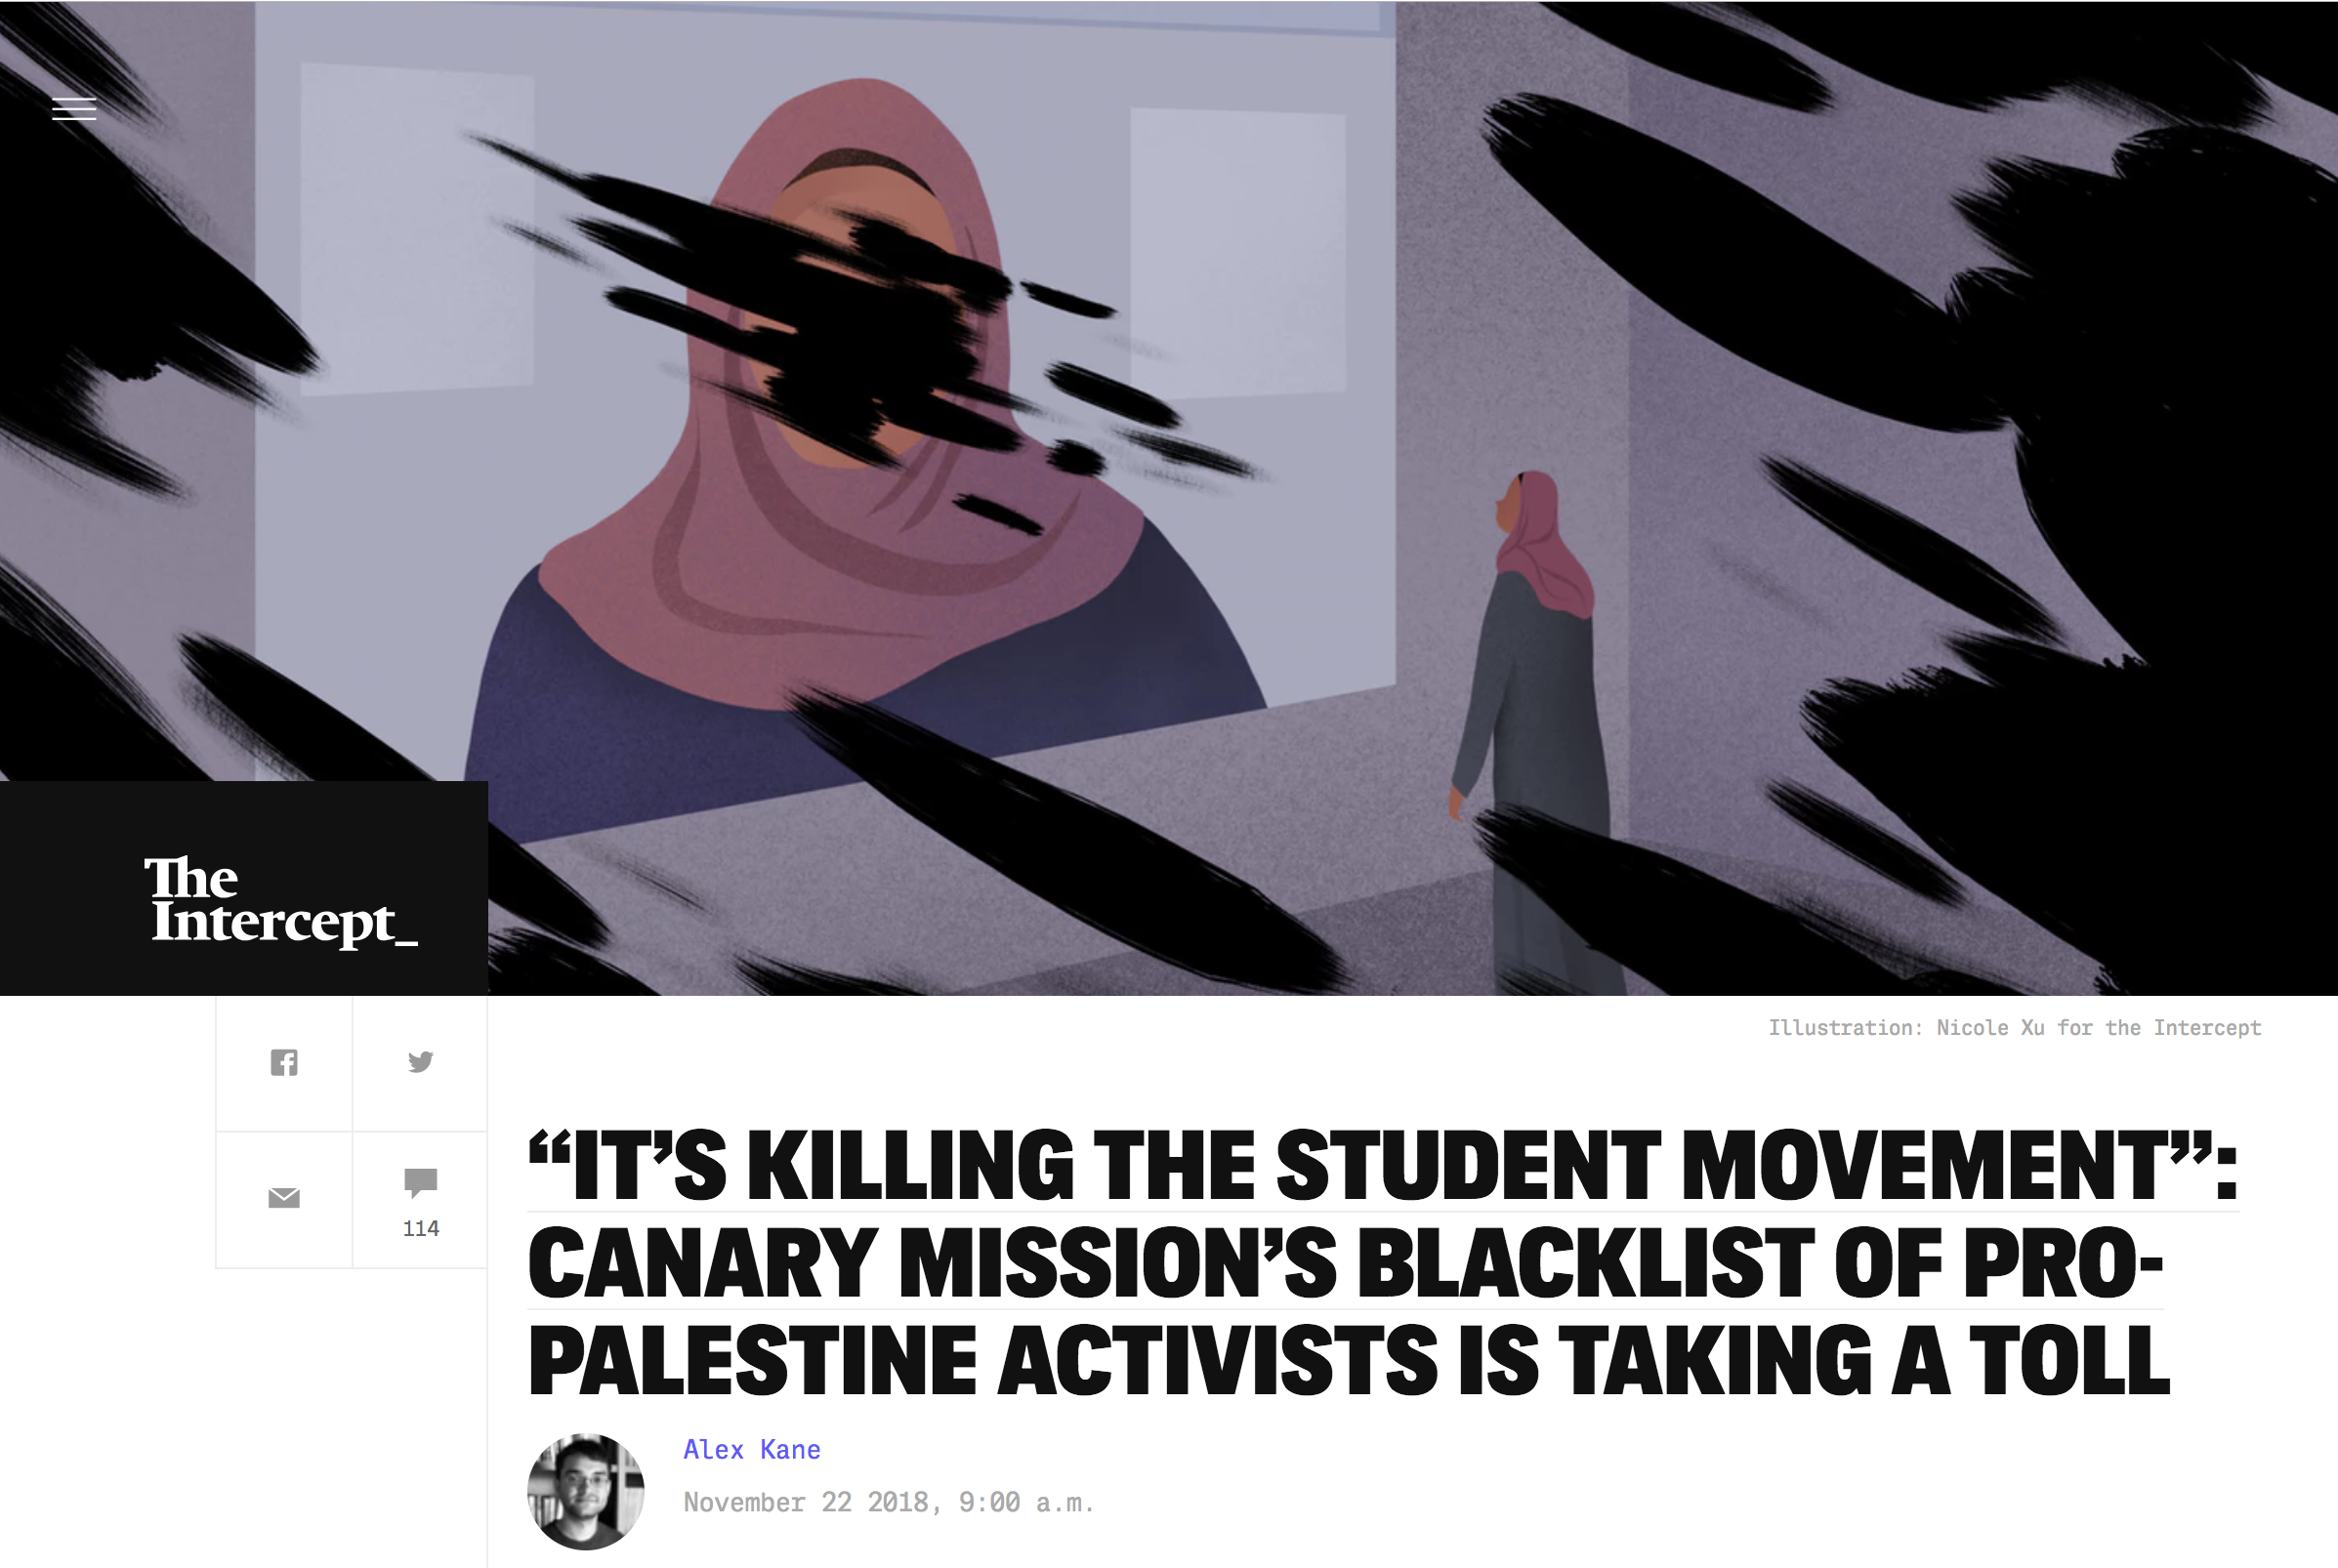 """Illustration:  Nicole Xu   Art Direction: Ariel Zambelich  Story:   """"It's Killing The Student Movement"""": Canary Mission's Blacklist of Pro-Palestine Activists Is Taking A Toll"""